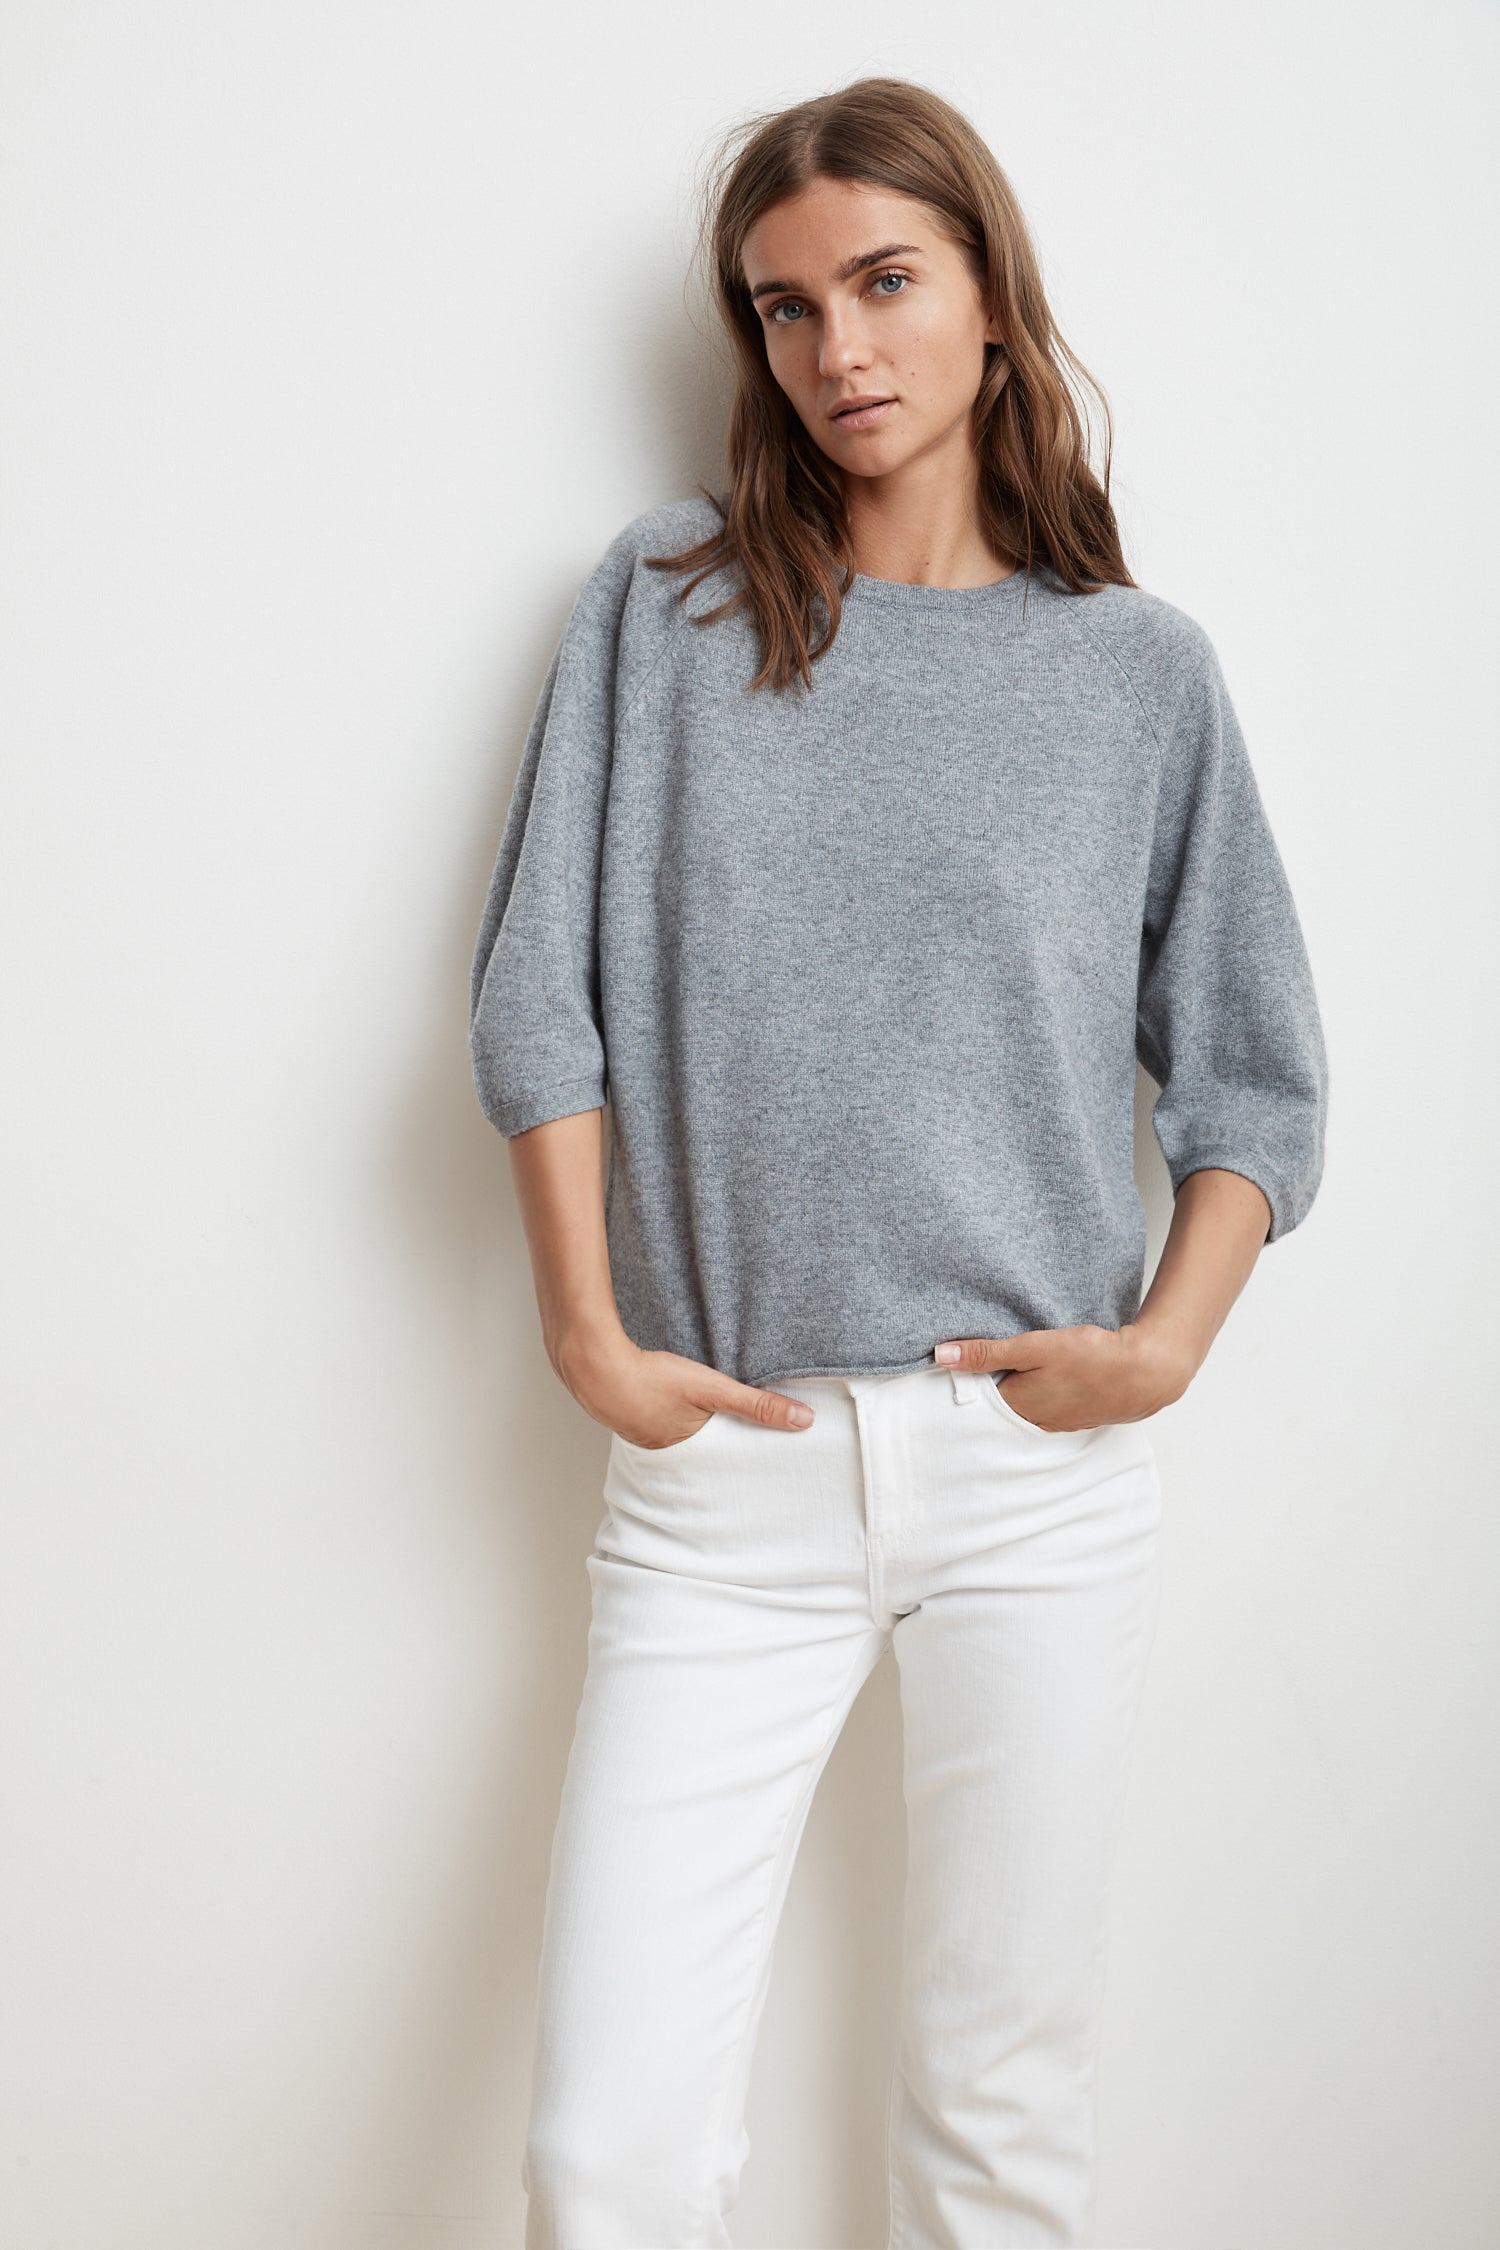 TARA 3/4 SLEEVE CASHMERE BLEND SWEATER IN GREY